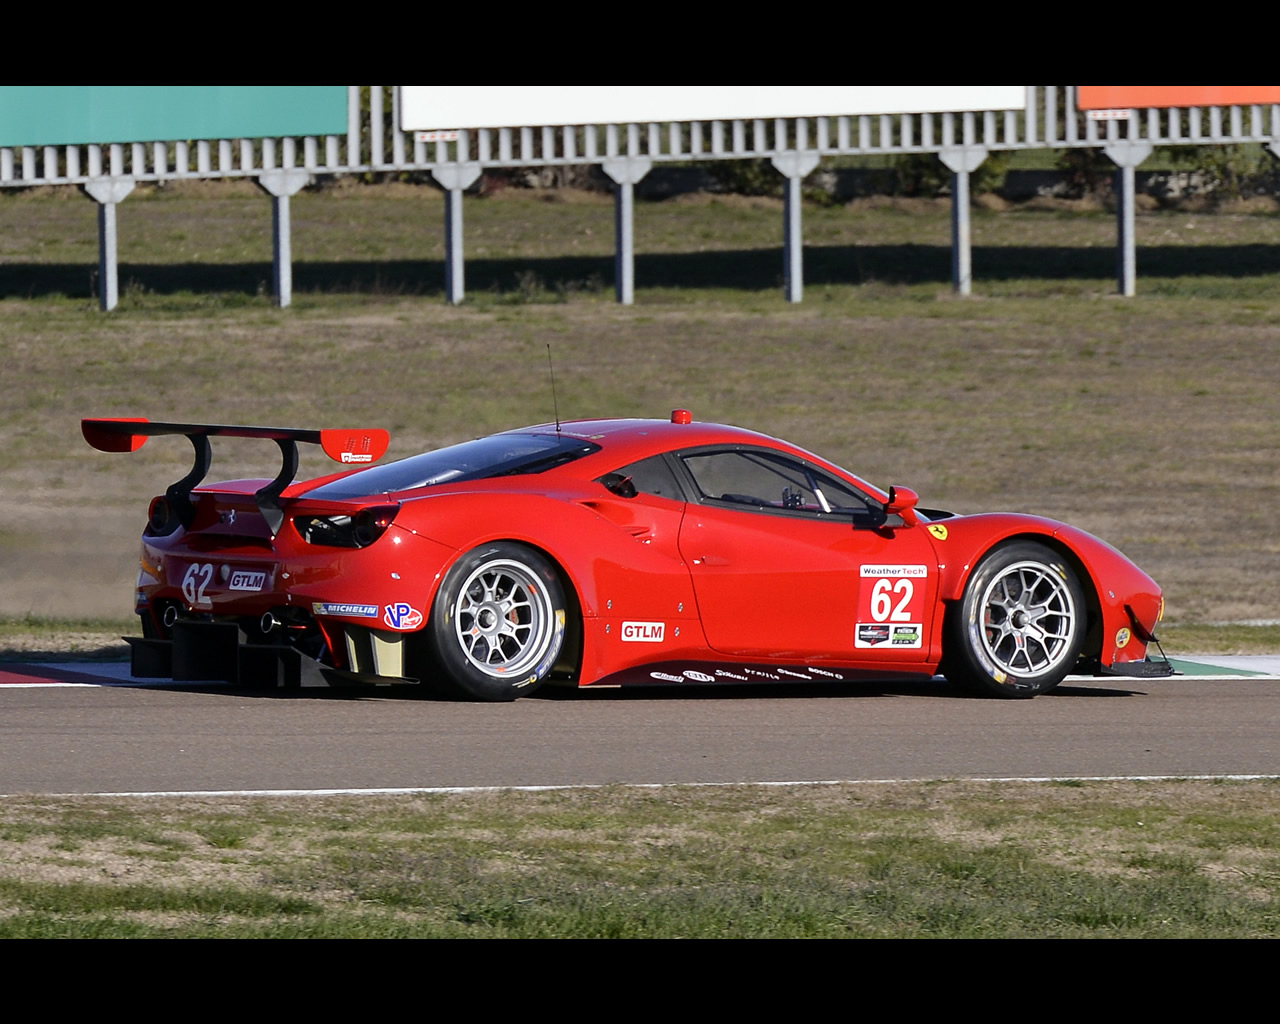 ferrari 488 gte and gt3 2016 2017 wec gte pro class winner. Black Bedroom Furniture Sets. Home Design Ideas